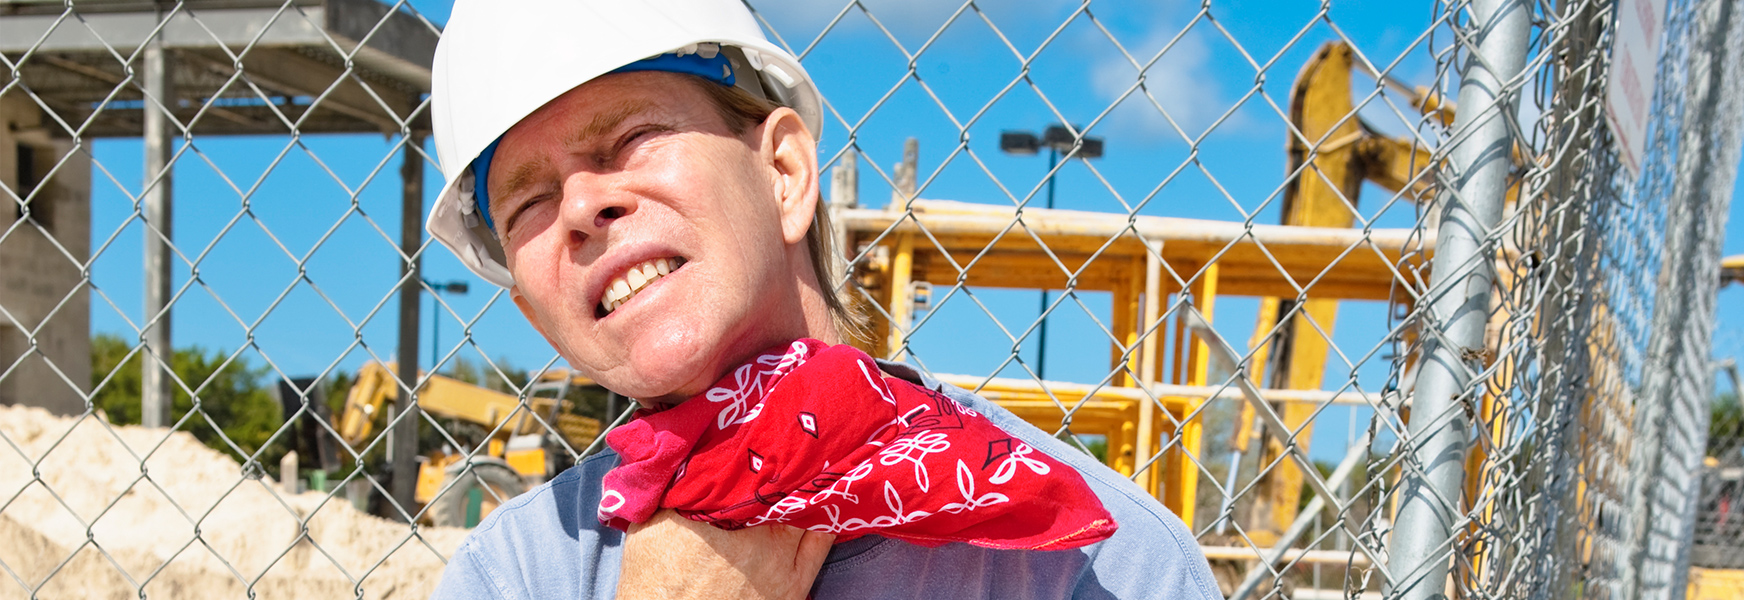 Man working in sun wiping sweat from neck with a bandanna